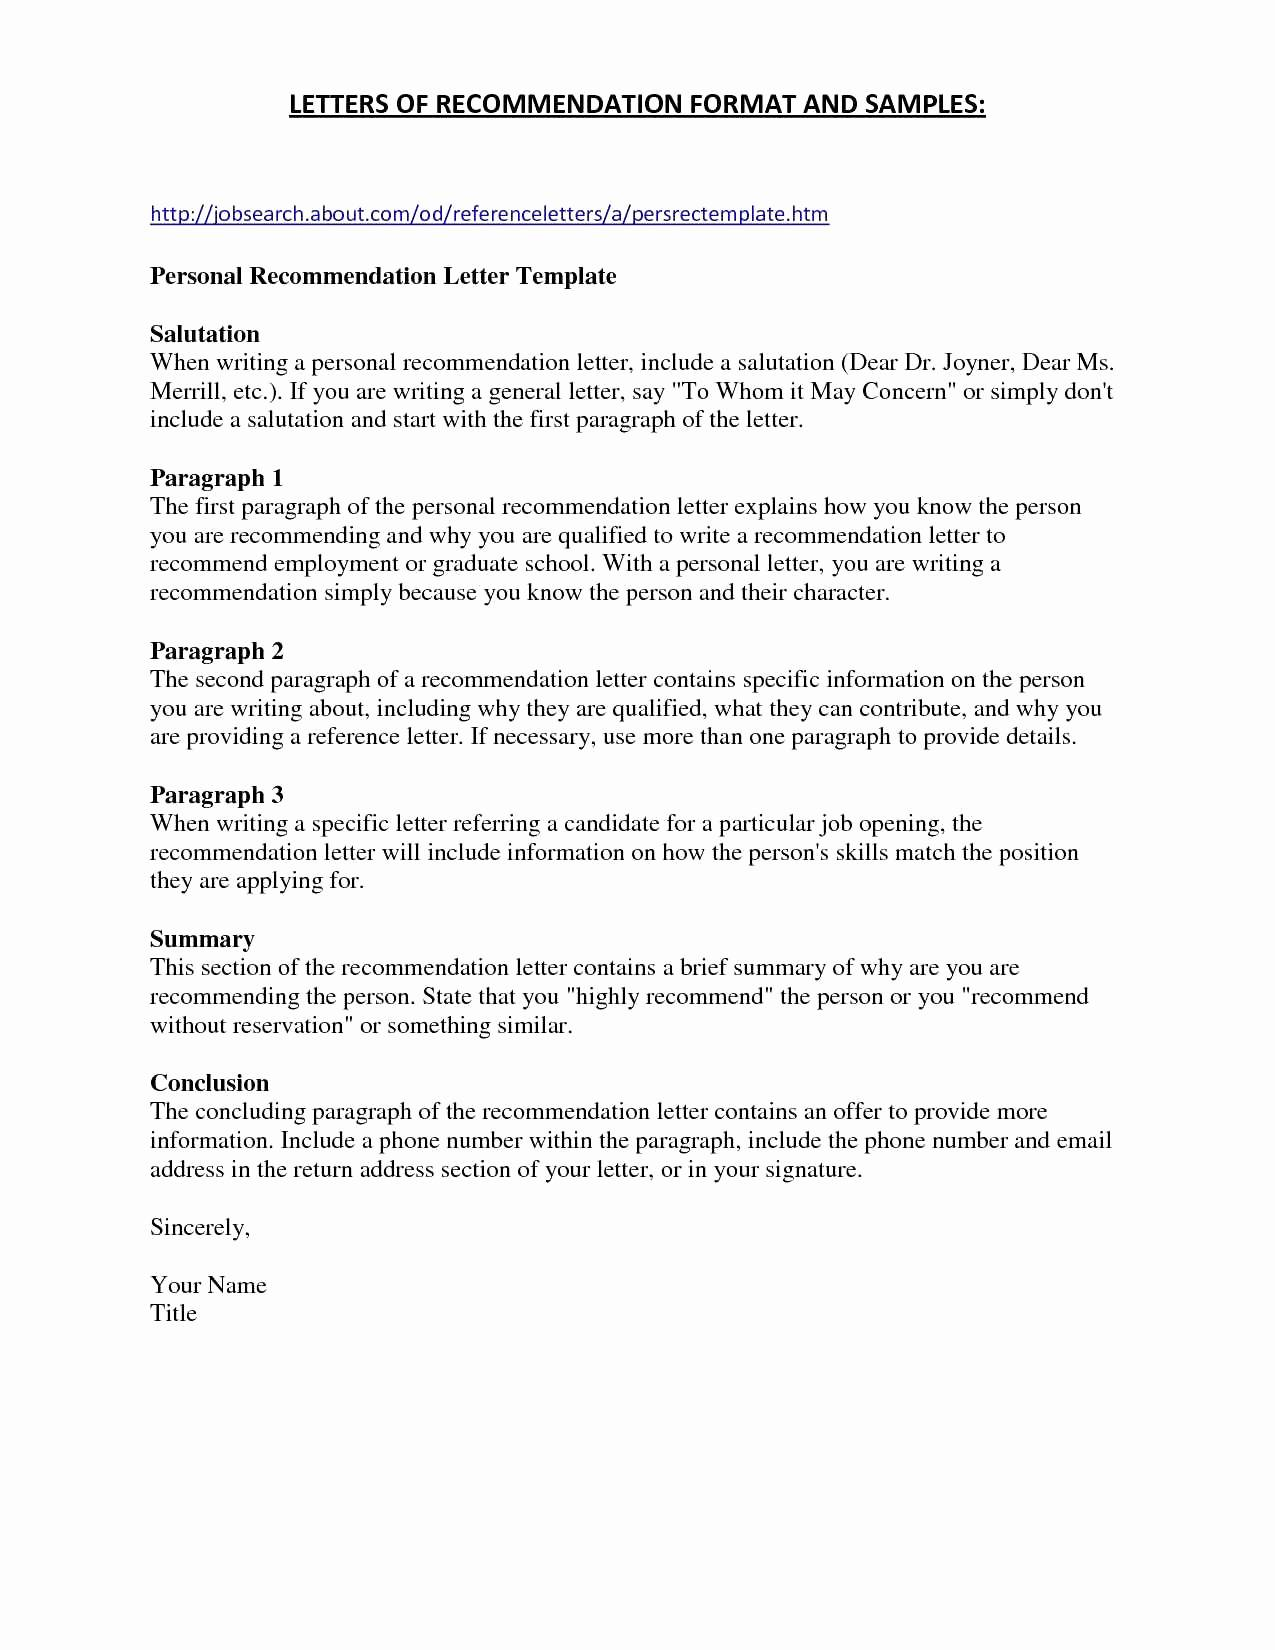 Phd Recommendation Letter Template - Candidate Application form Template Unique Free Template for